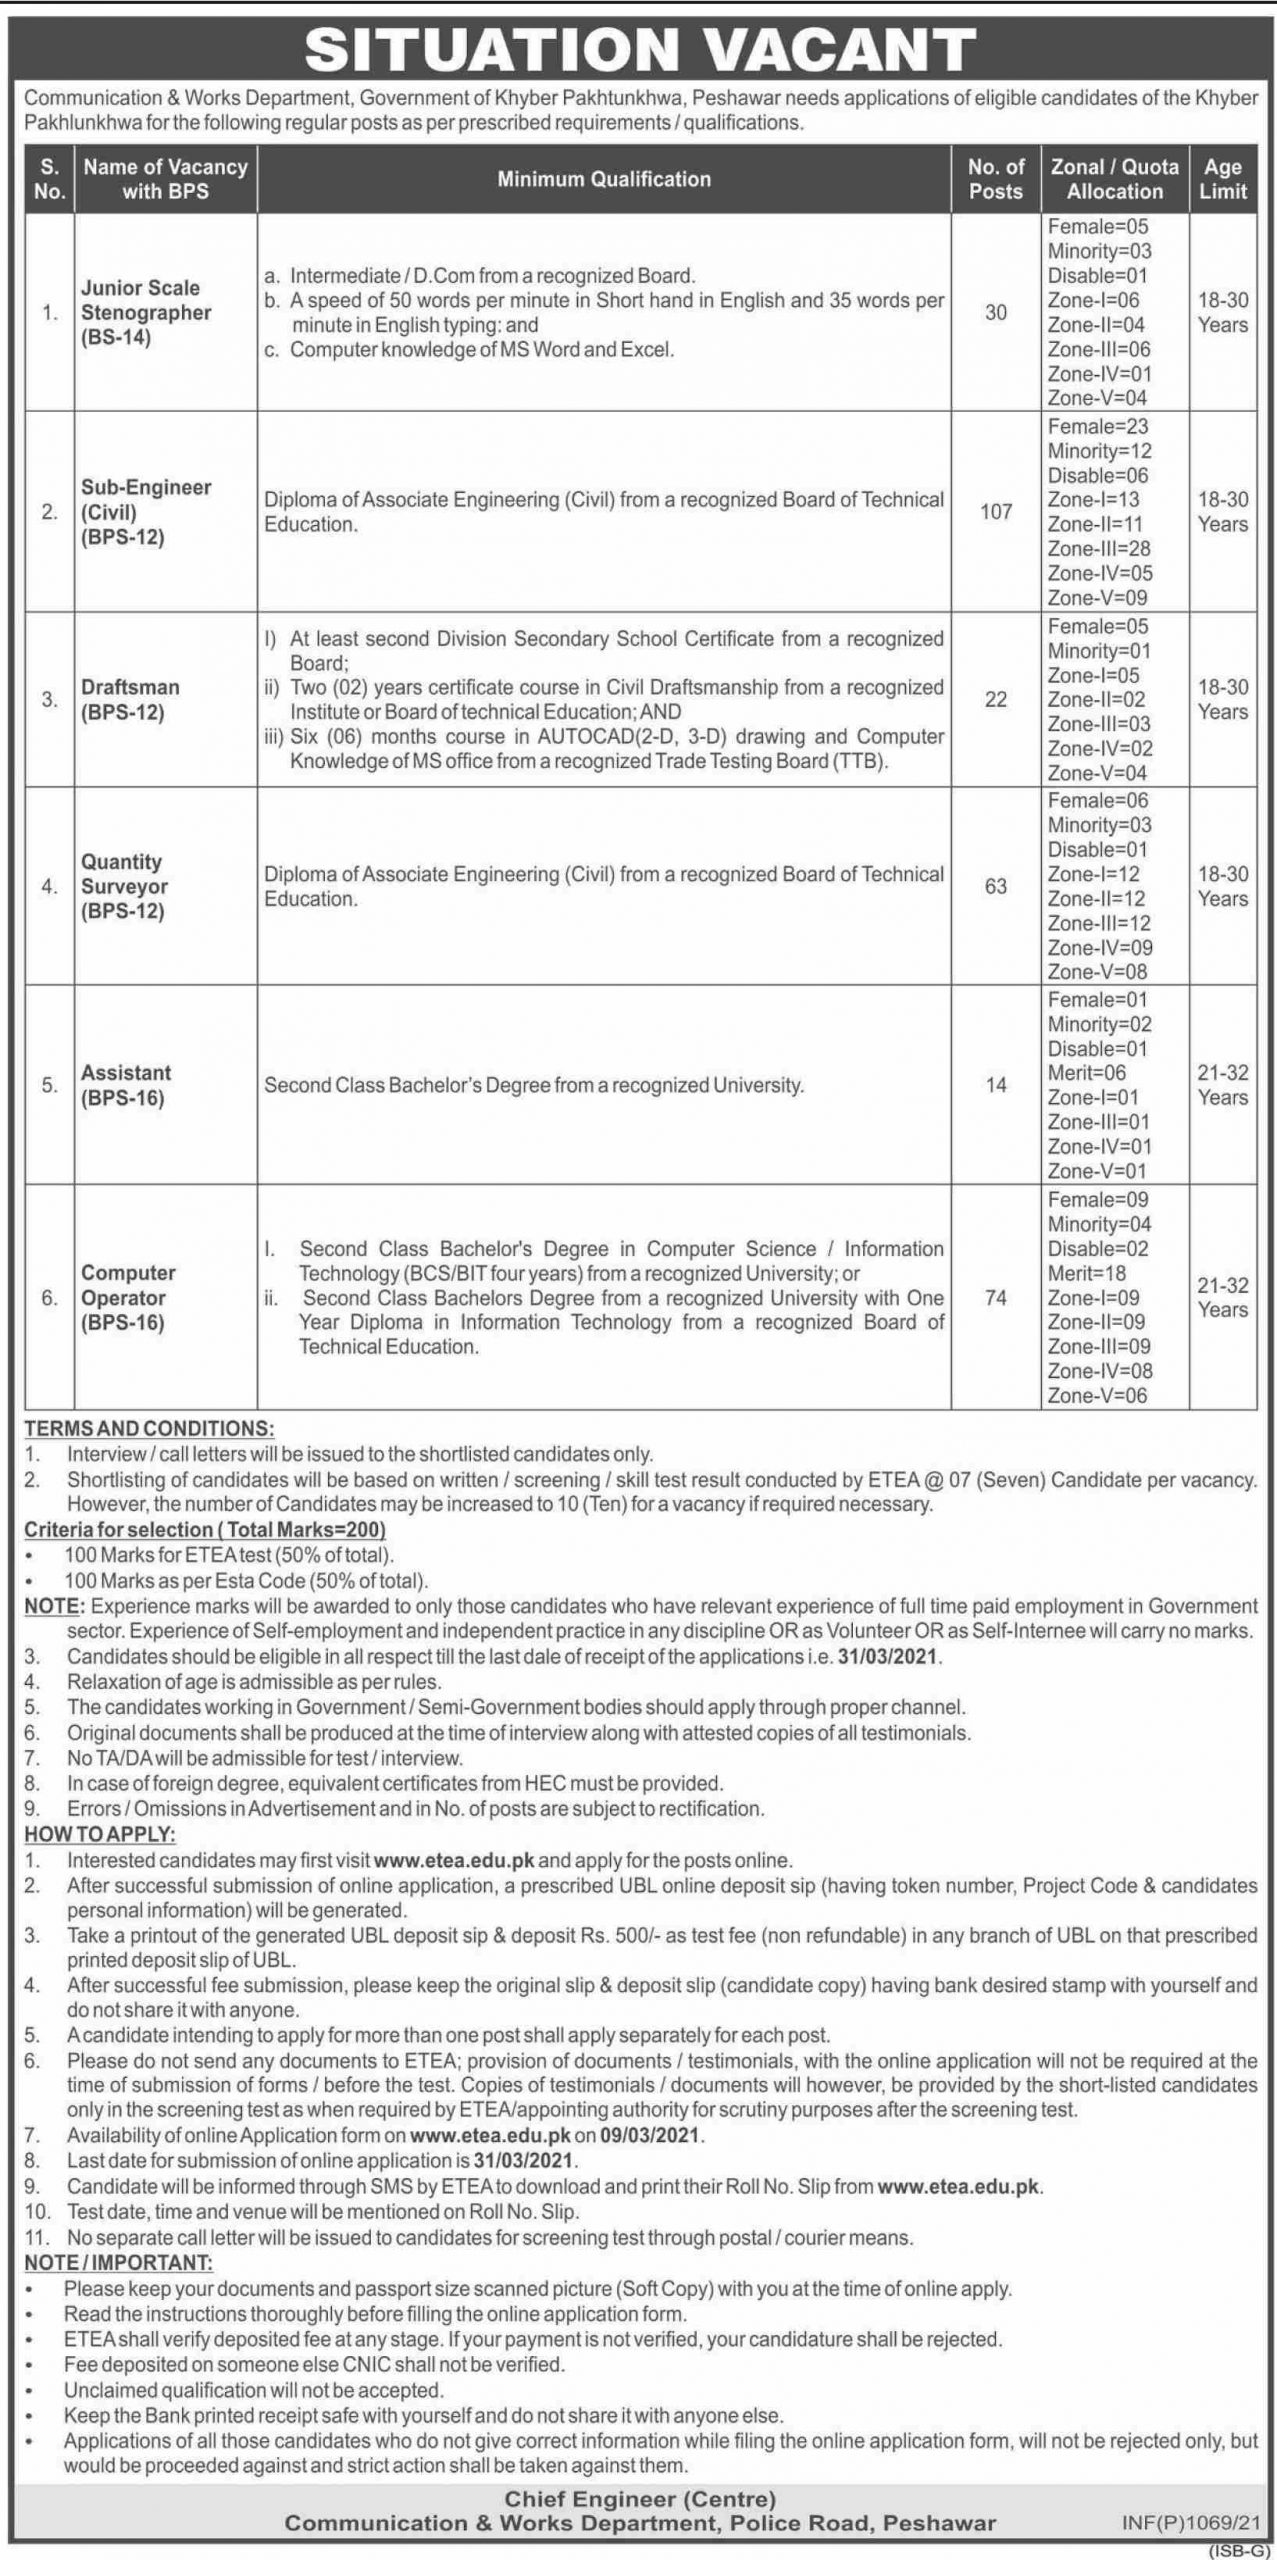 Communication & Works Department Government of Khyber Pakhtunkhwa Peshawar Jobs March 2021